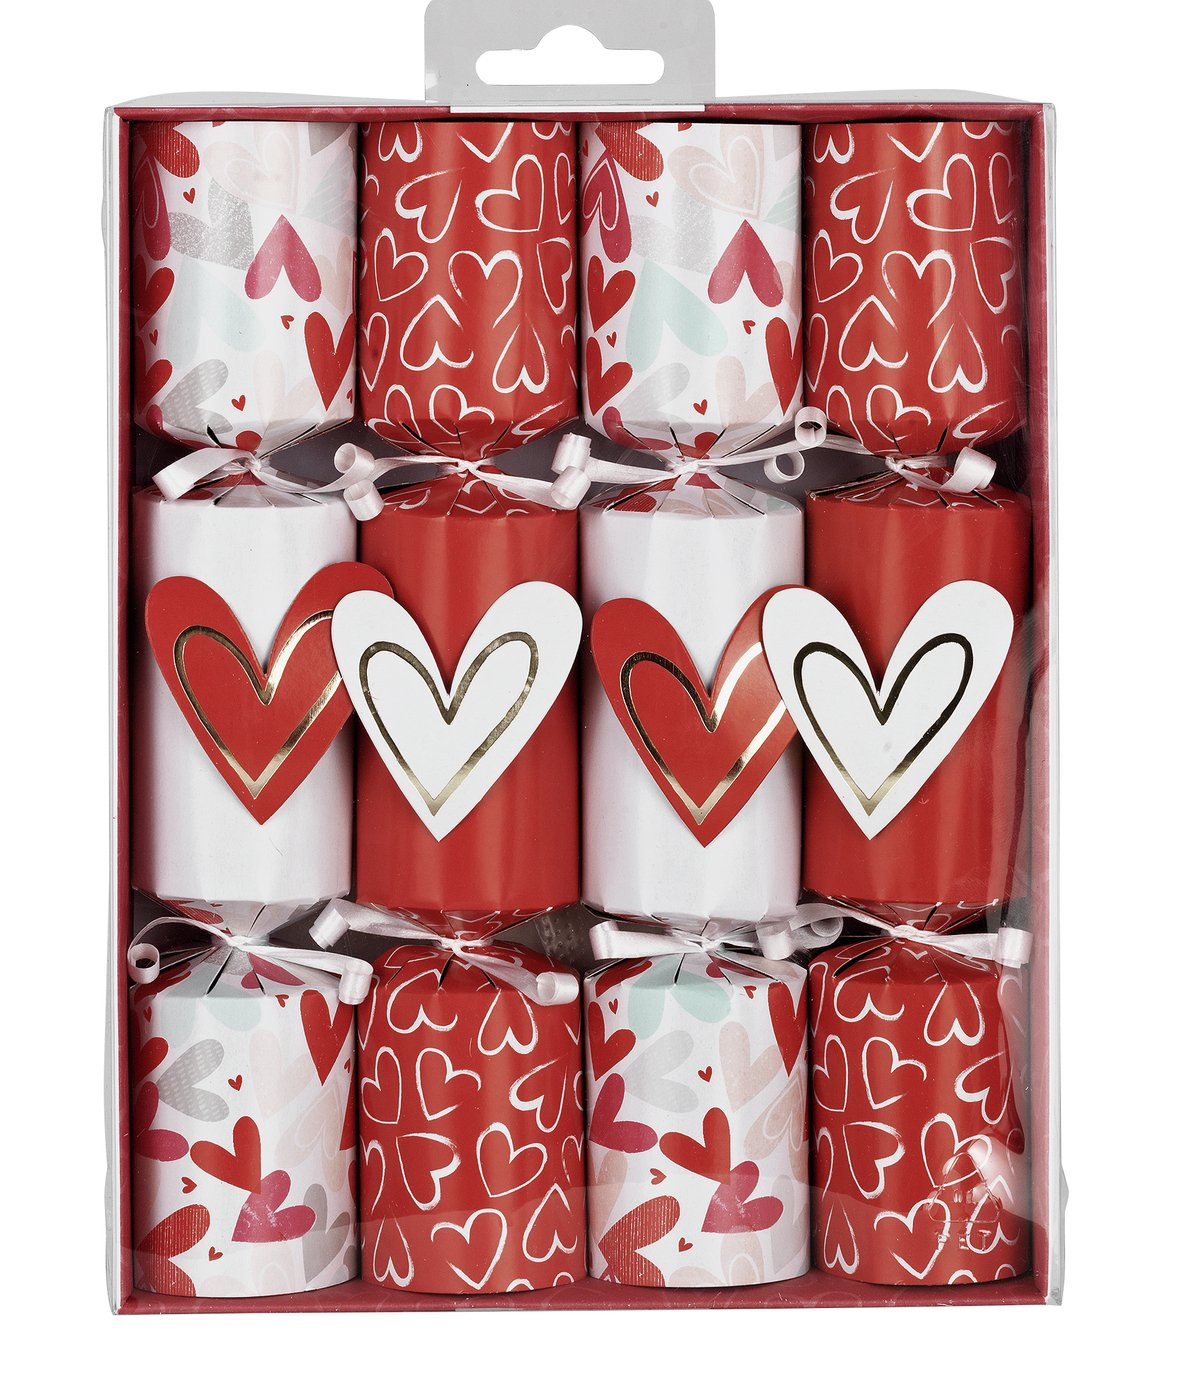 Argos Home Valentine's Day Crackers review